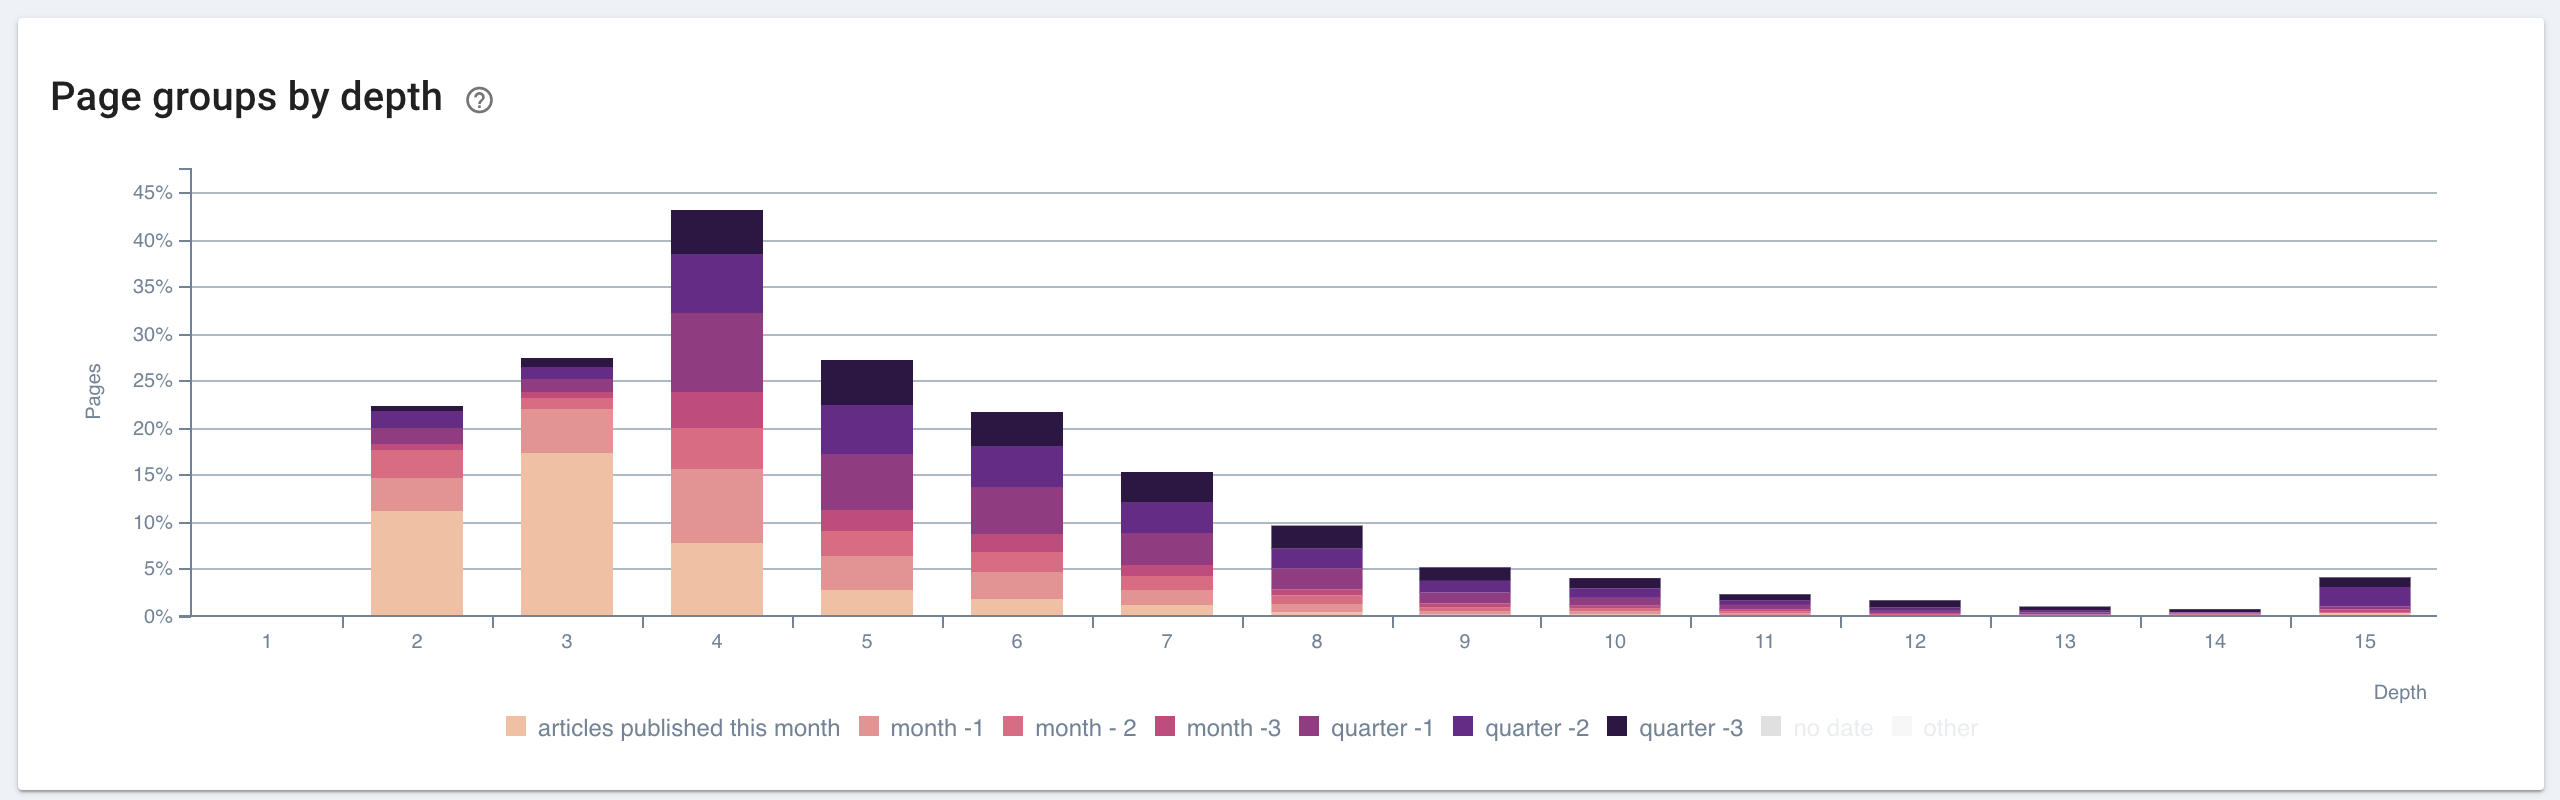 Recency distribution of articles on a media website by page depth.